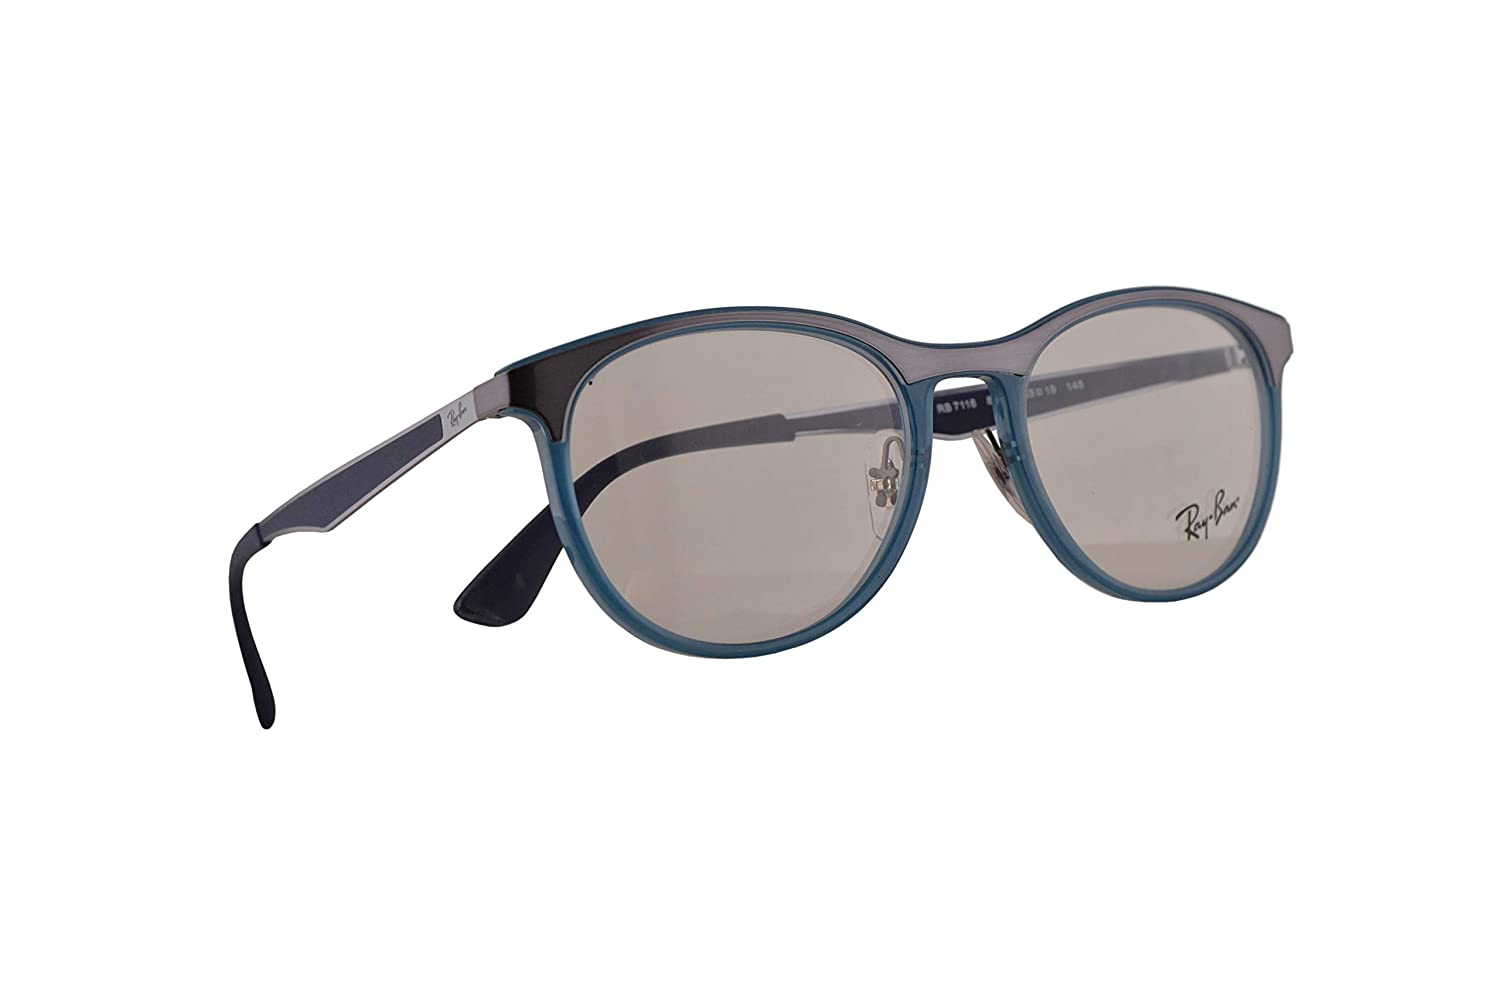 Ray-Ban RB 7116 RX RX7116 RB7116 - Gafas de sol, color azul ...